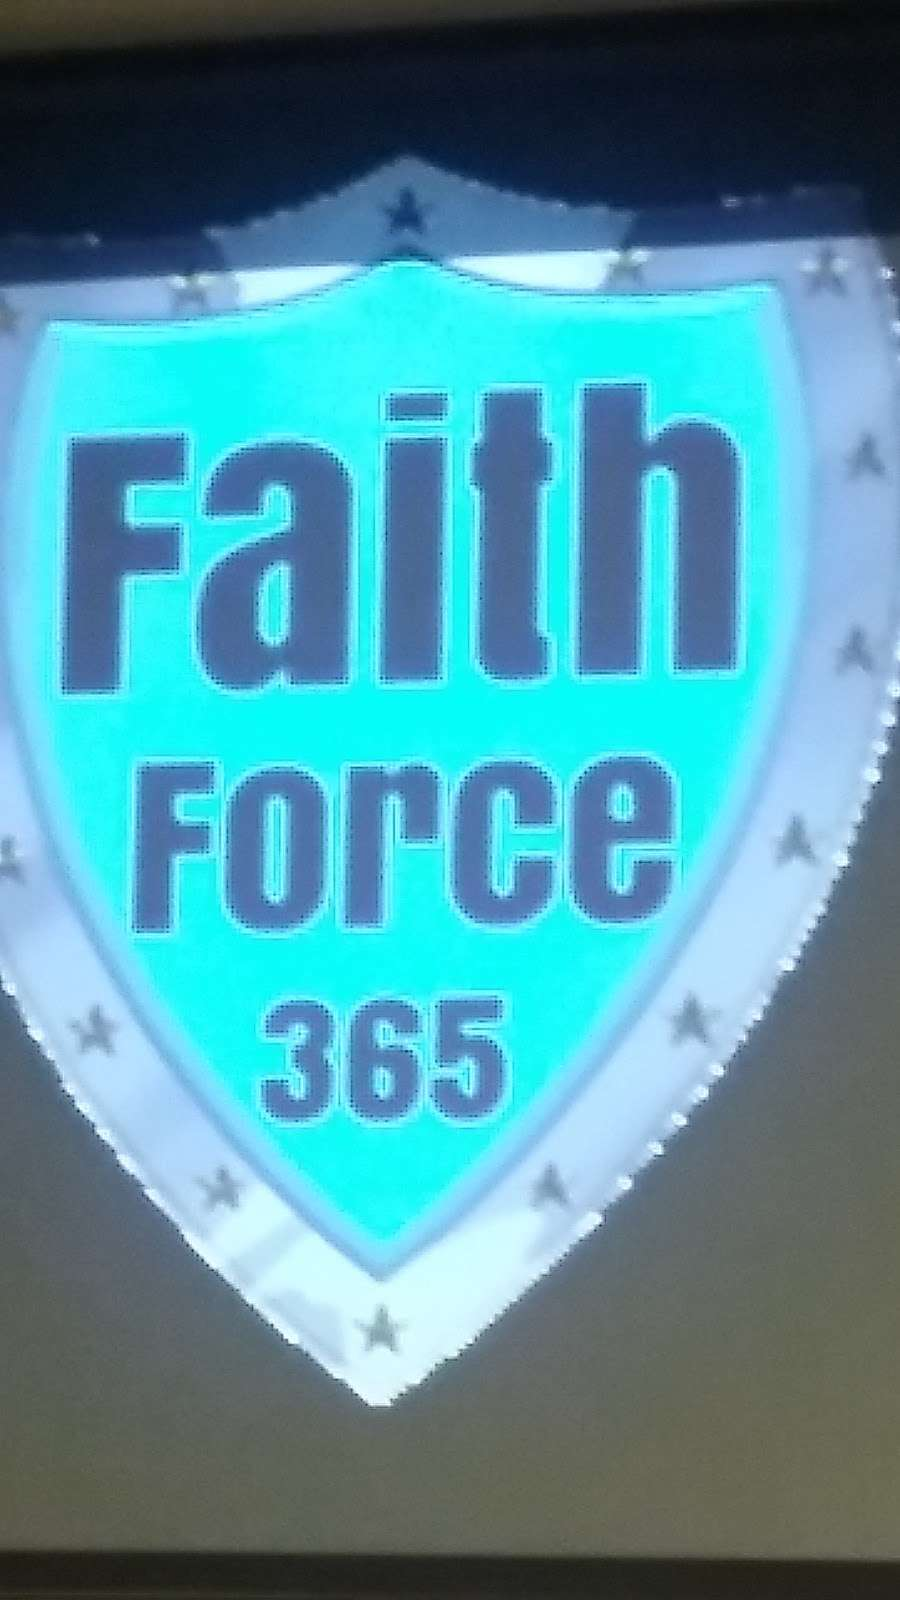 Faith For Life Church - church  | Photo 6 of 7 | Address: 1417 FM646, Dickinson, TX 77539, USA | Phone: (409) 440-8298